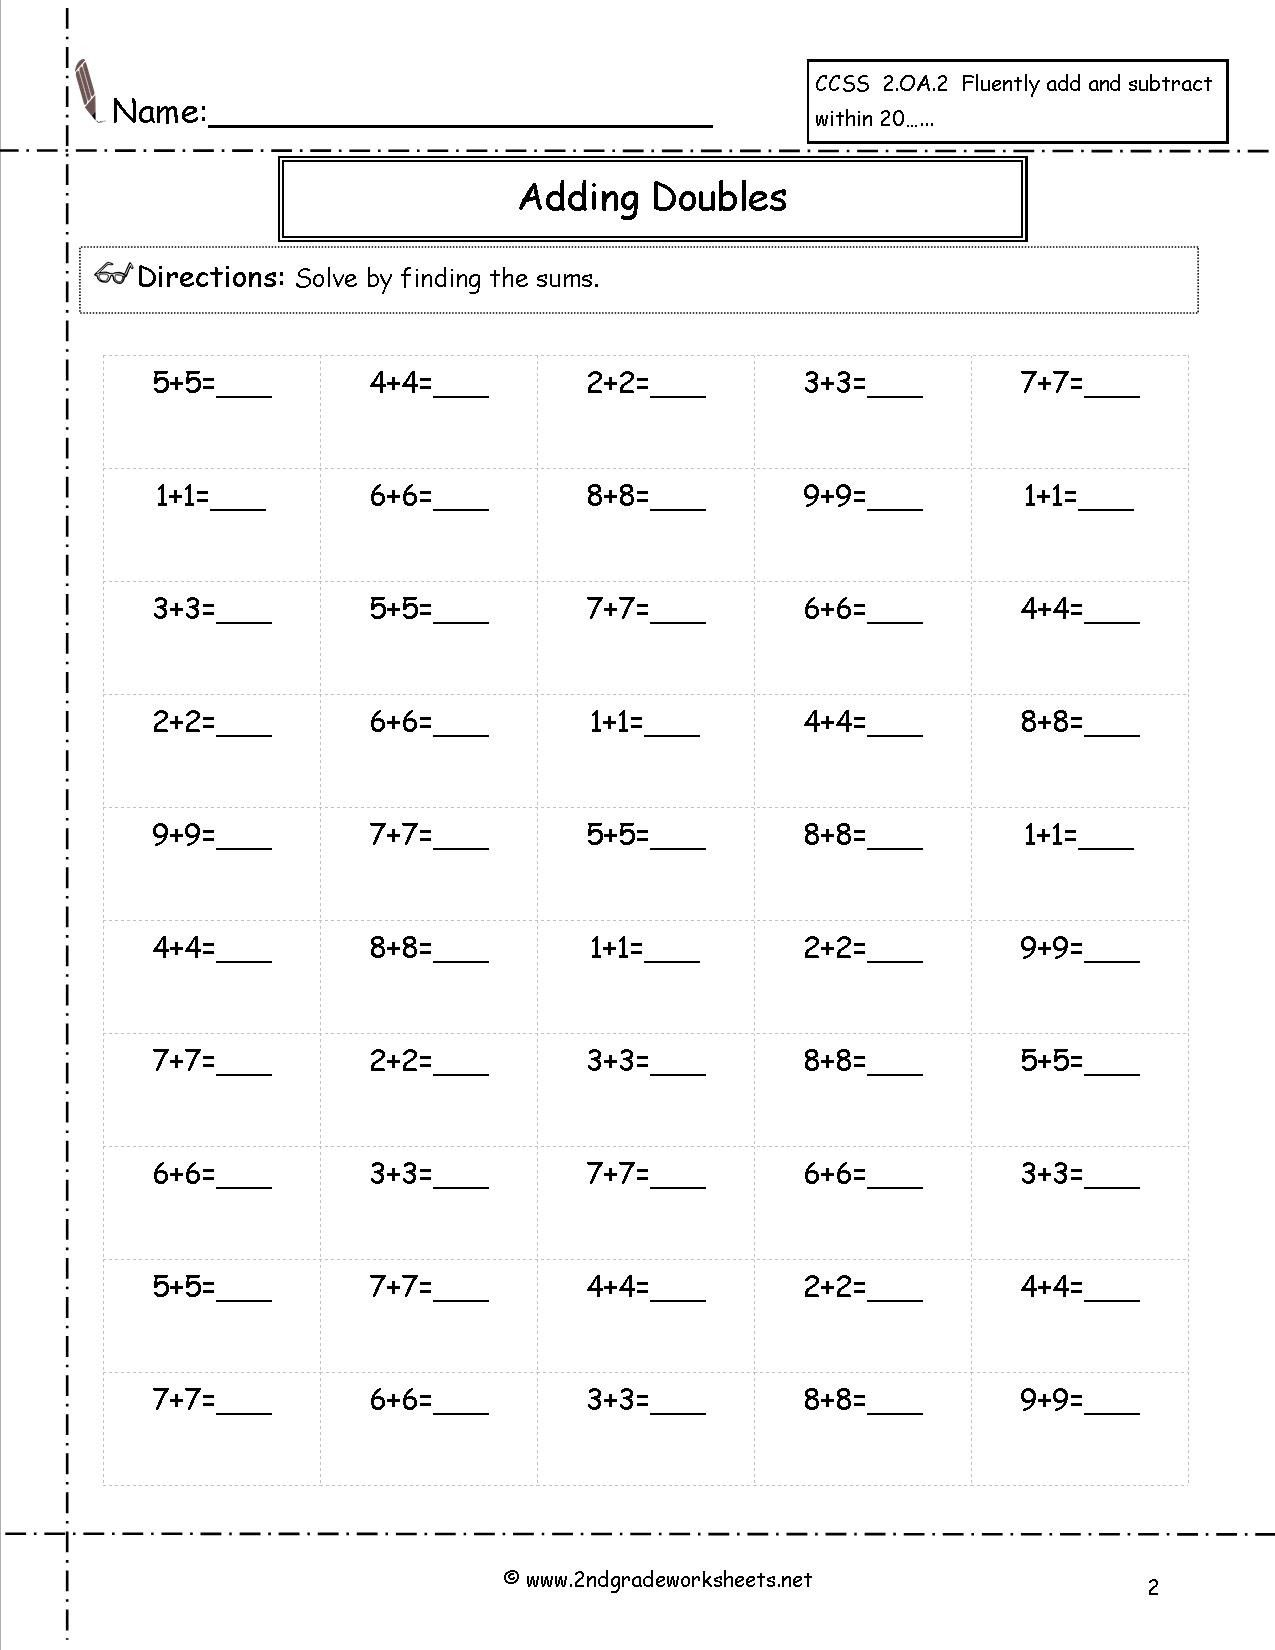 4 Reading Comprehension Worksheets Second Grade 2 Free